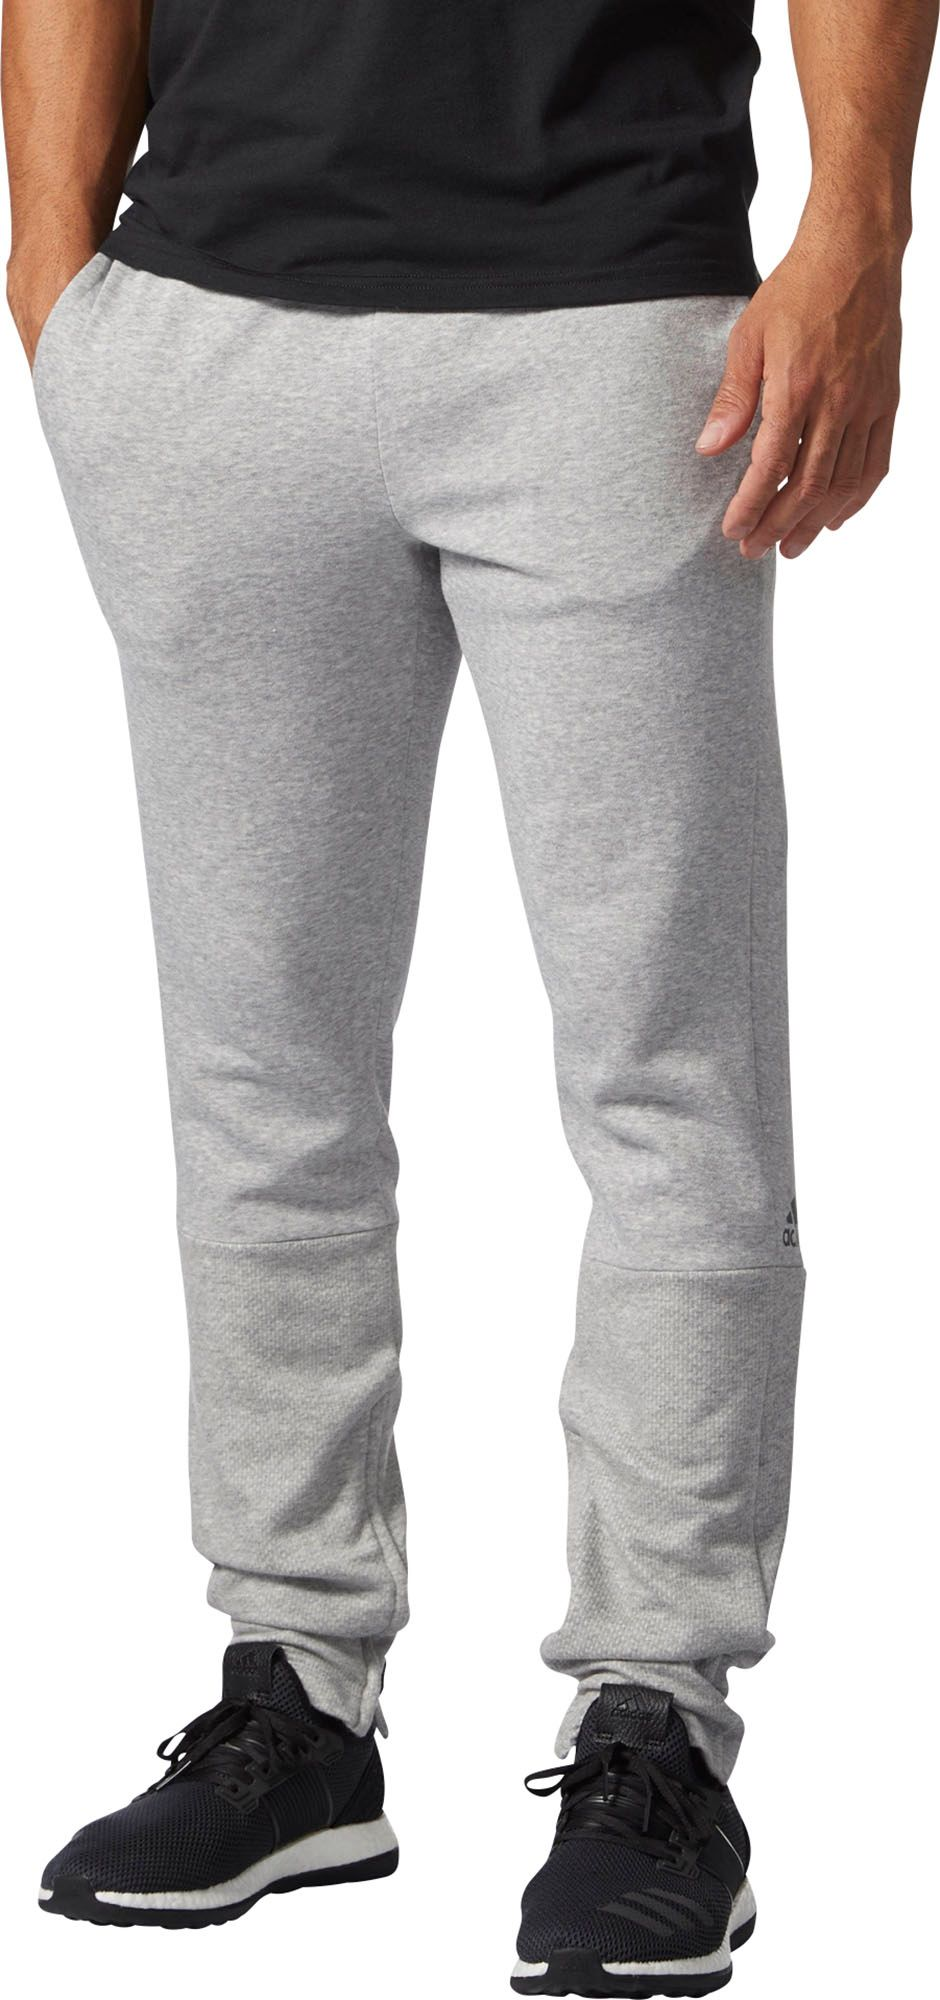 dicks mens sweat pants